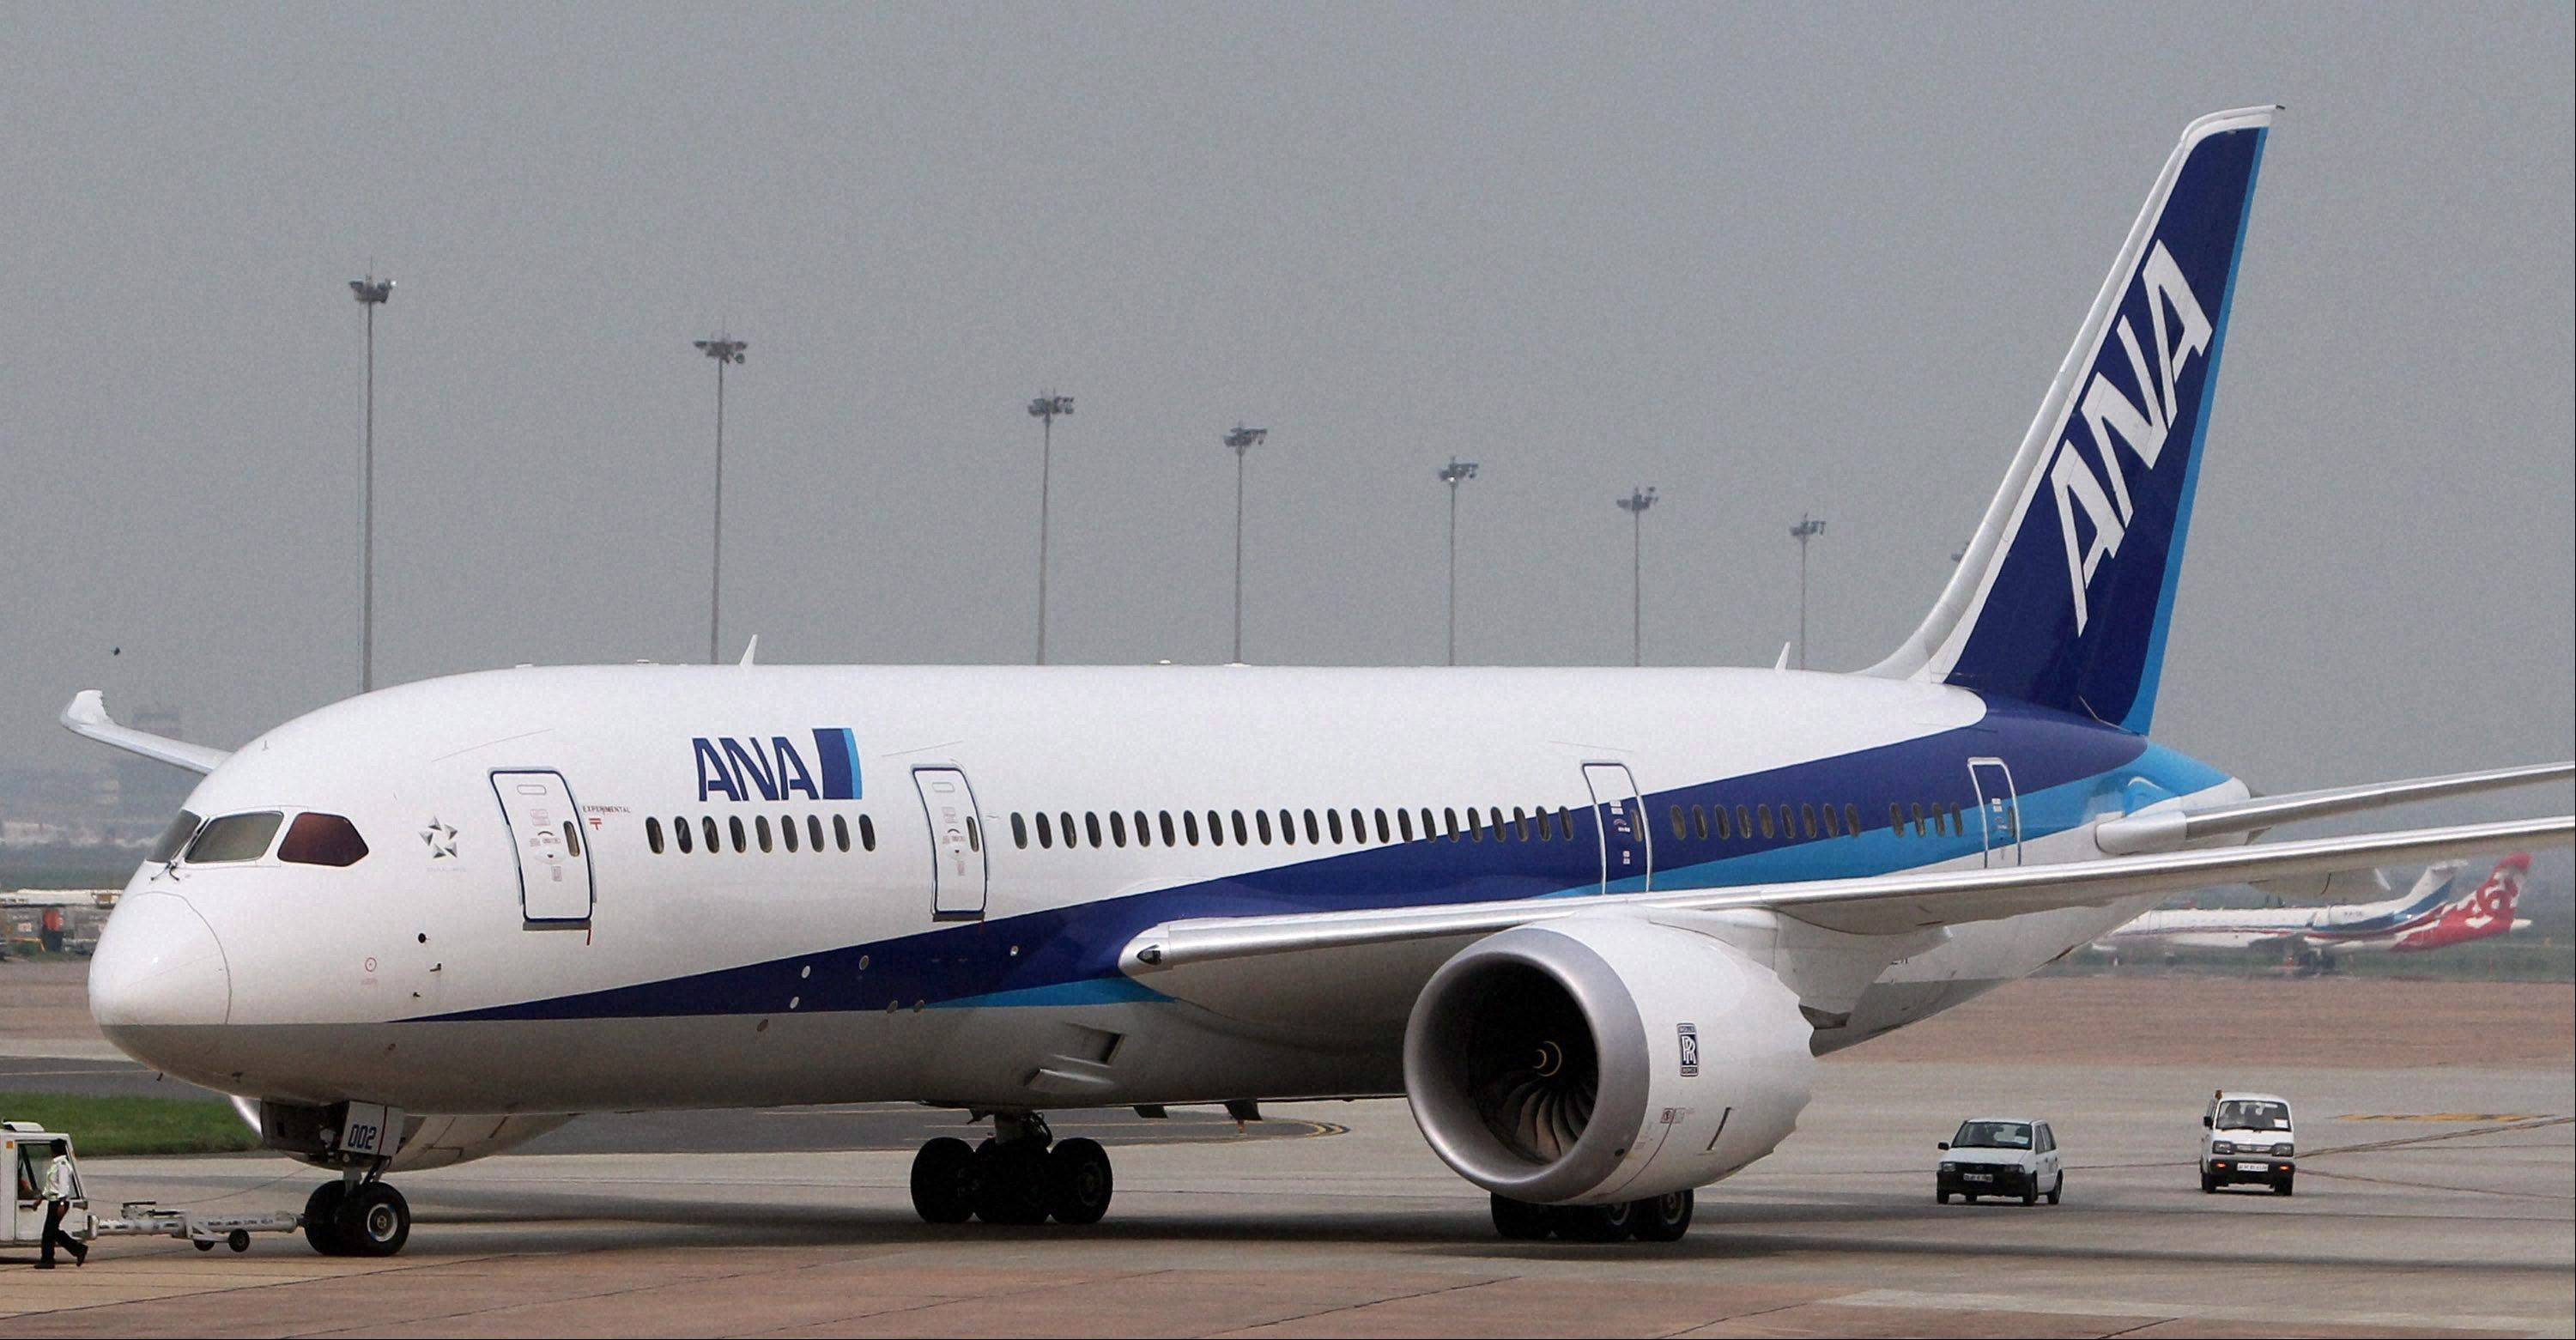 A Japanese carrier's Dreamliner had engine trouble before takeoff Wednesday, a day after a rival airline had a problem on another 787 plane.